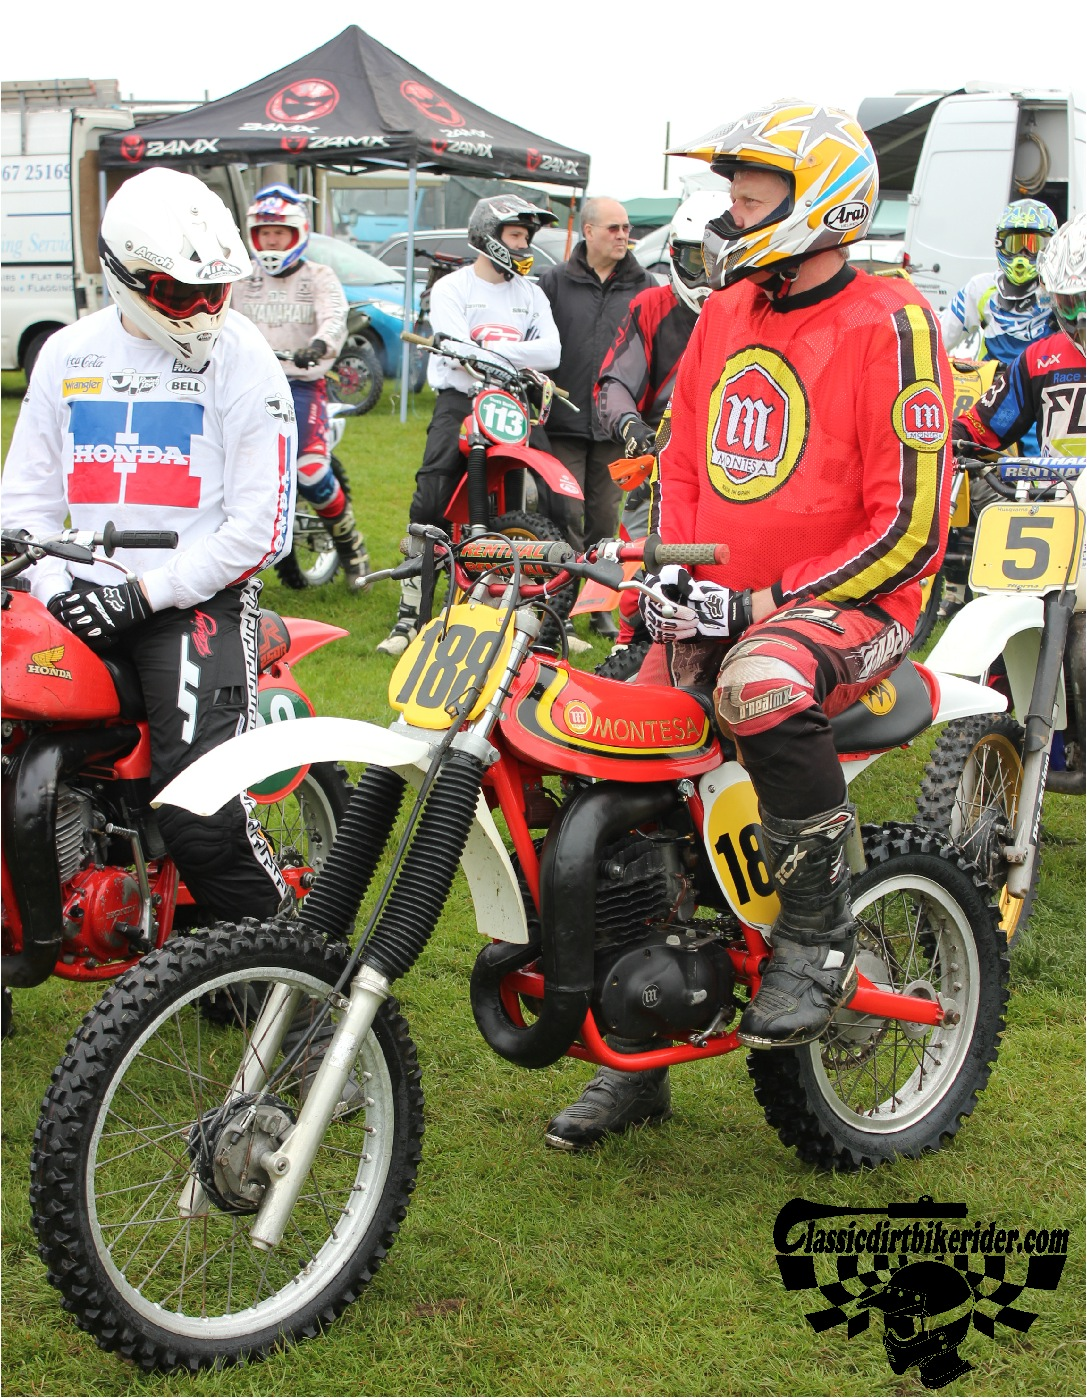 classicdirtbikerider.com-national-twinshock-championship-2015-Garstang-riders get ready for practice 21